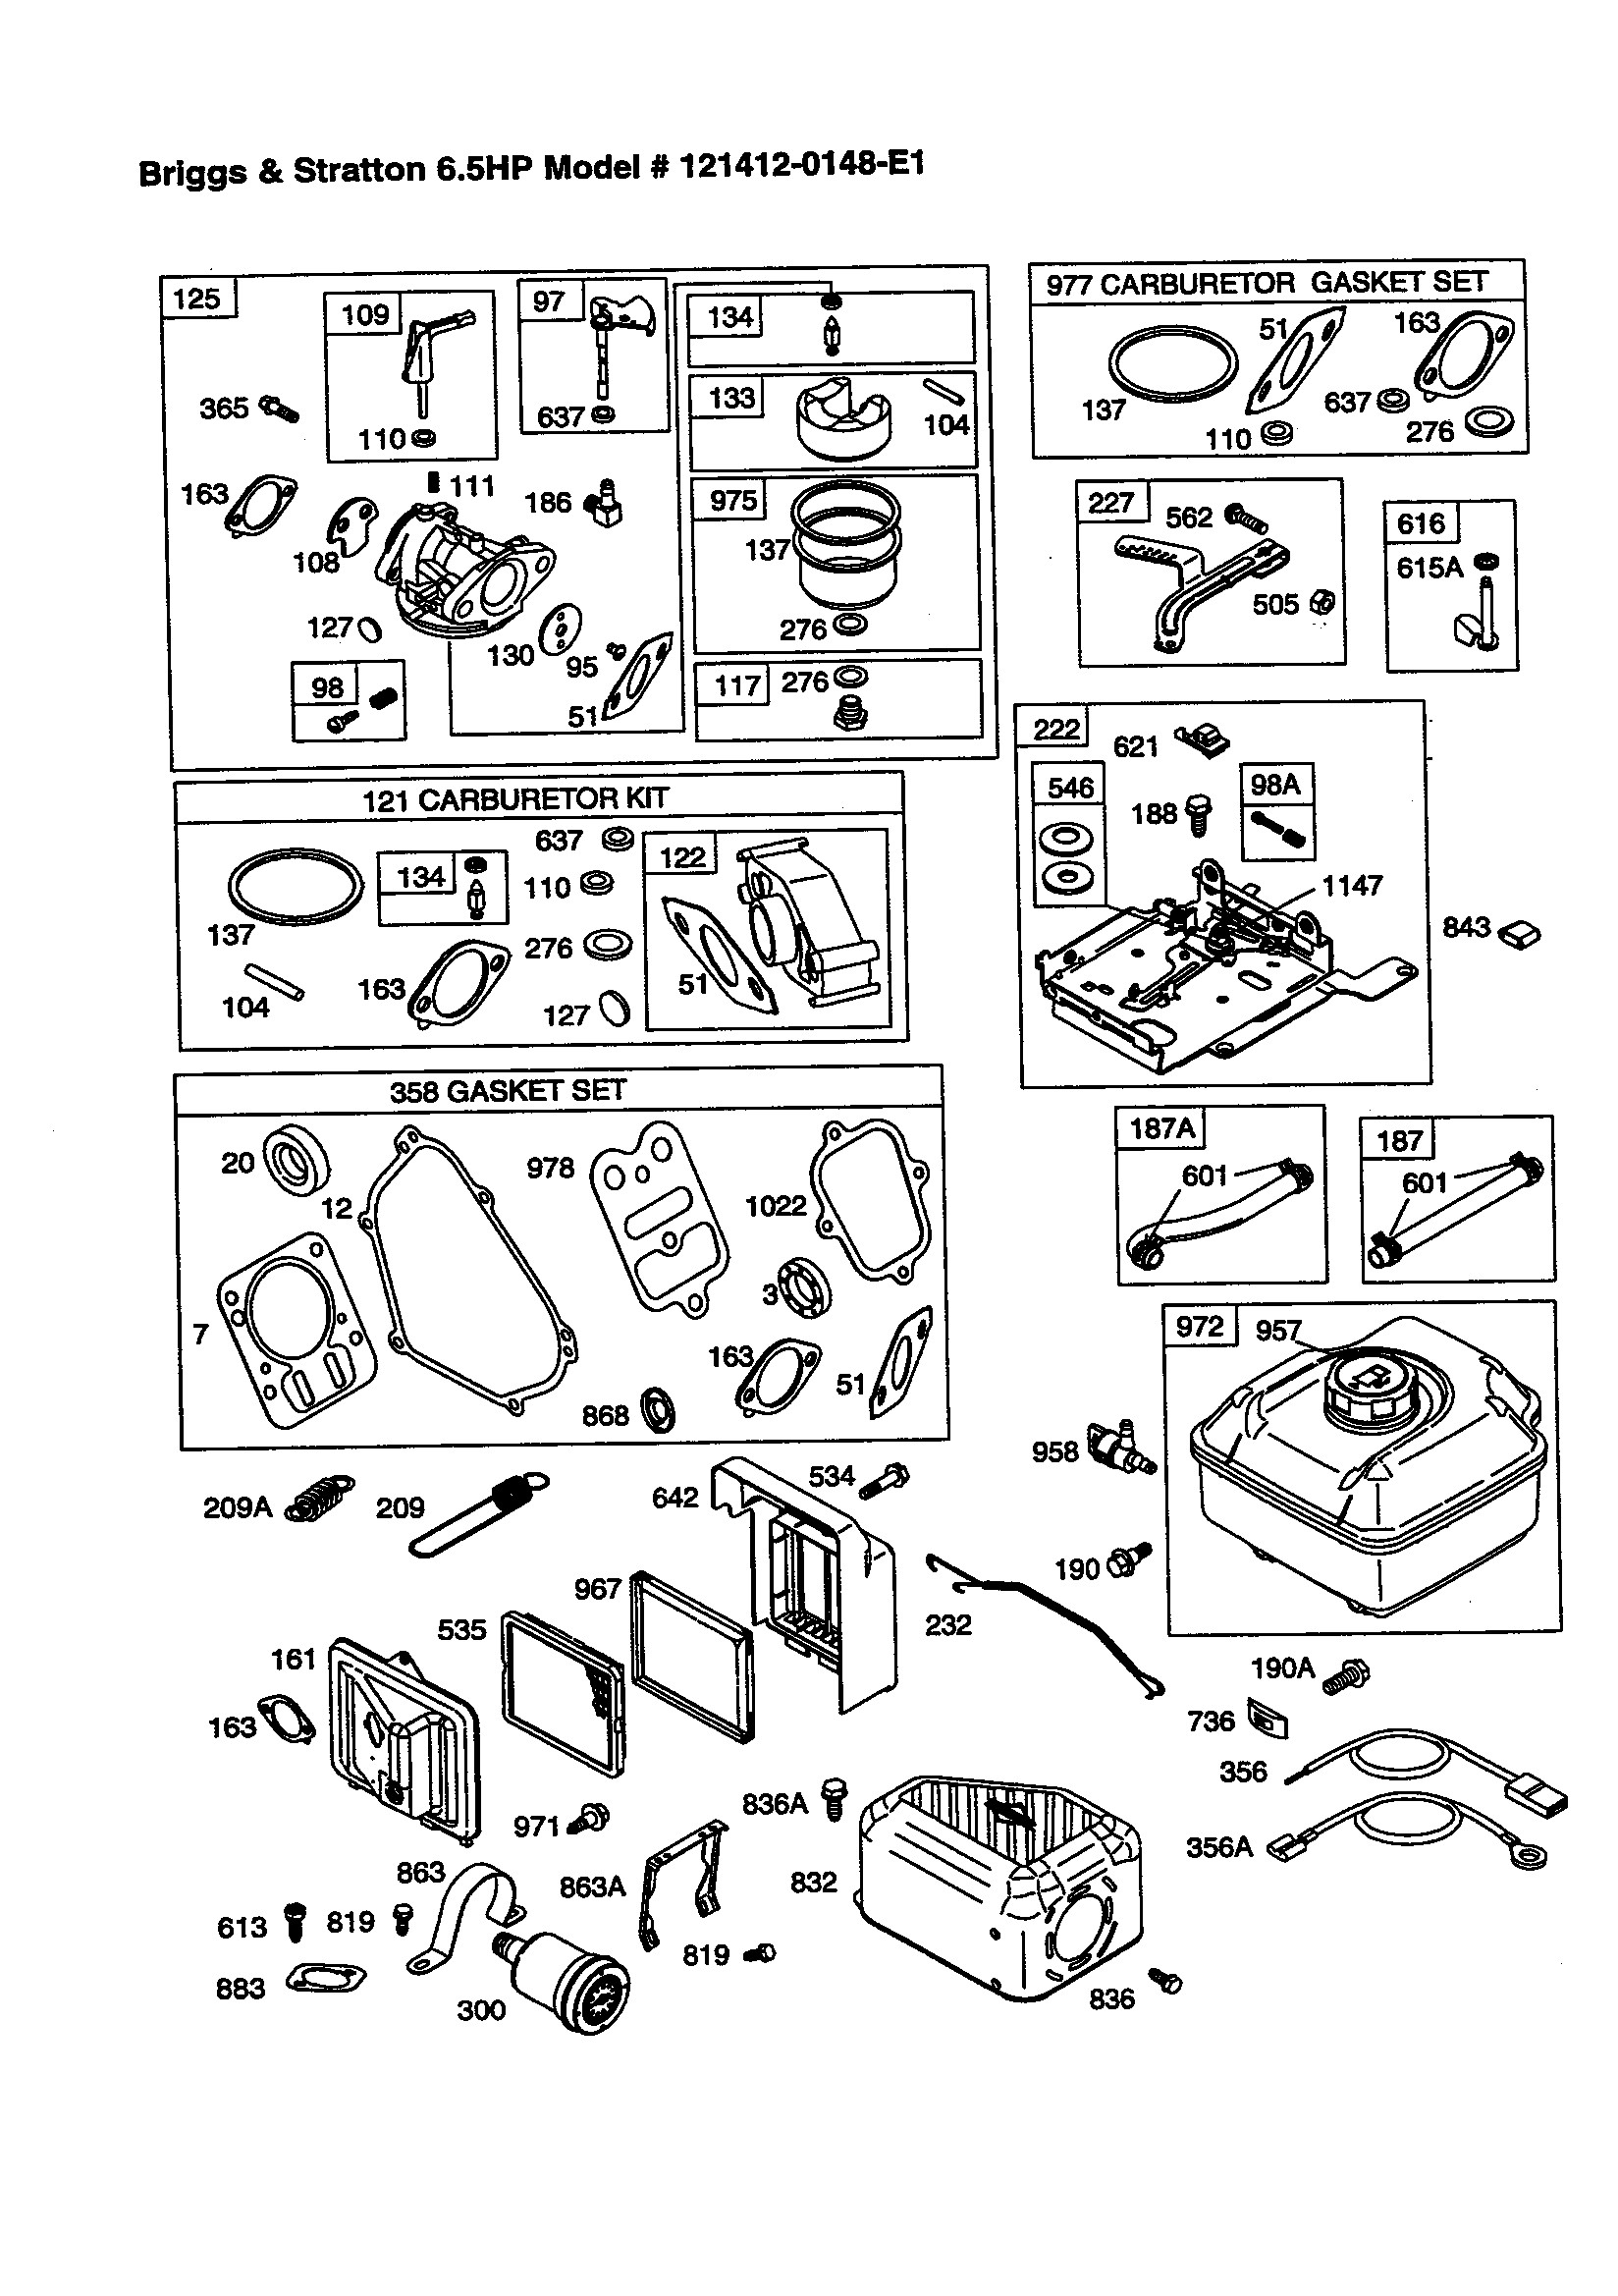 Diagram Of Briggs and Stratton Lawn Mower Engine Fancy Briggs and Stratton Engine Parts Diagram Vignette Electrical Of Diagram Of Briggs and Stratton Lawn Mower Engine